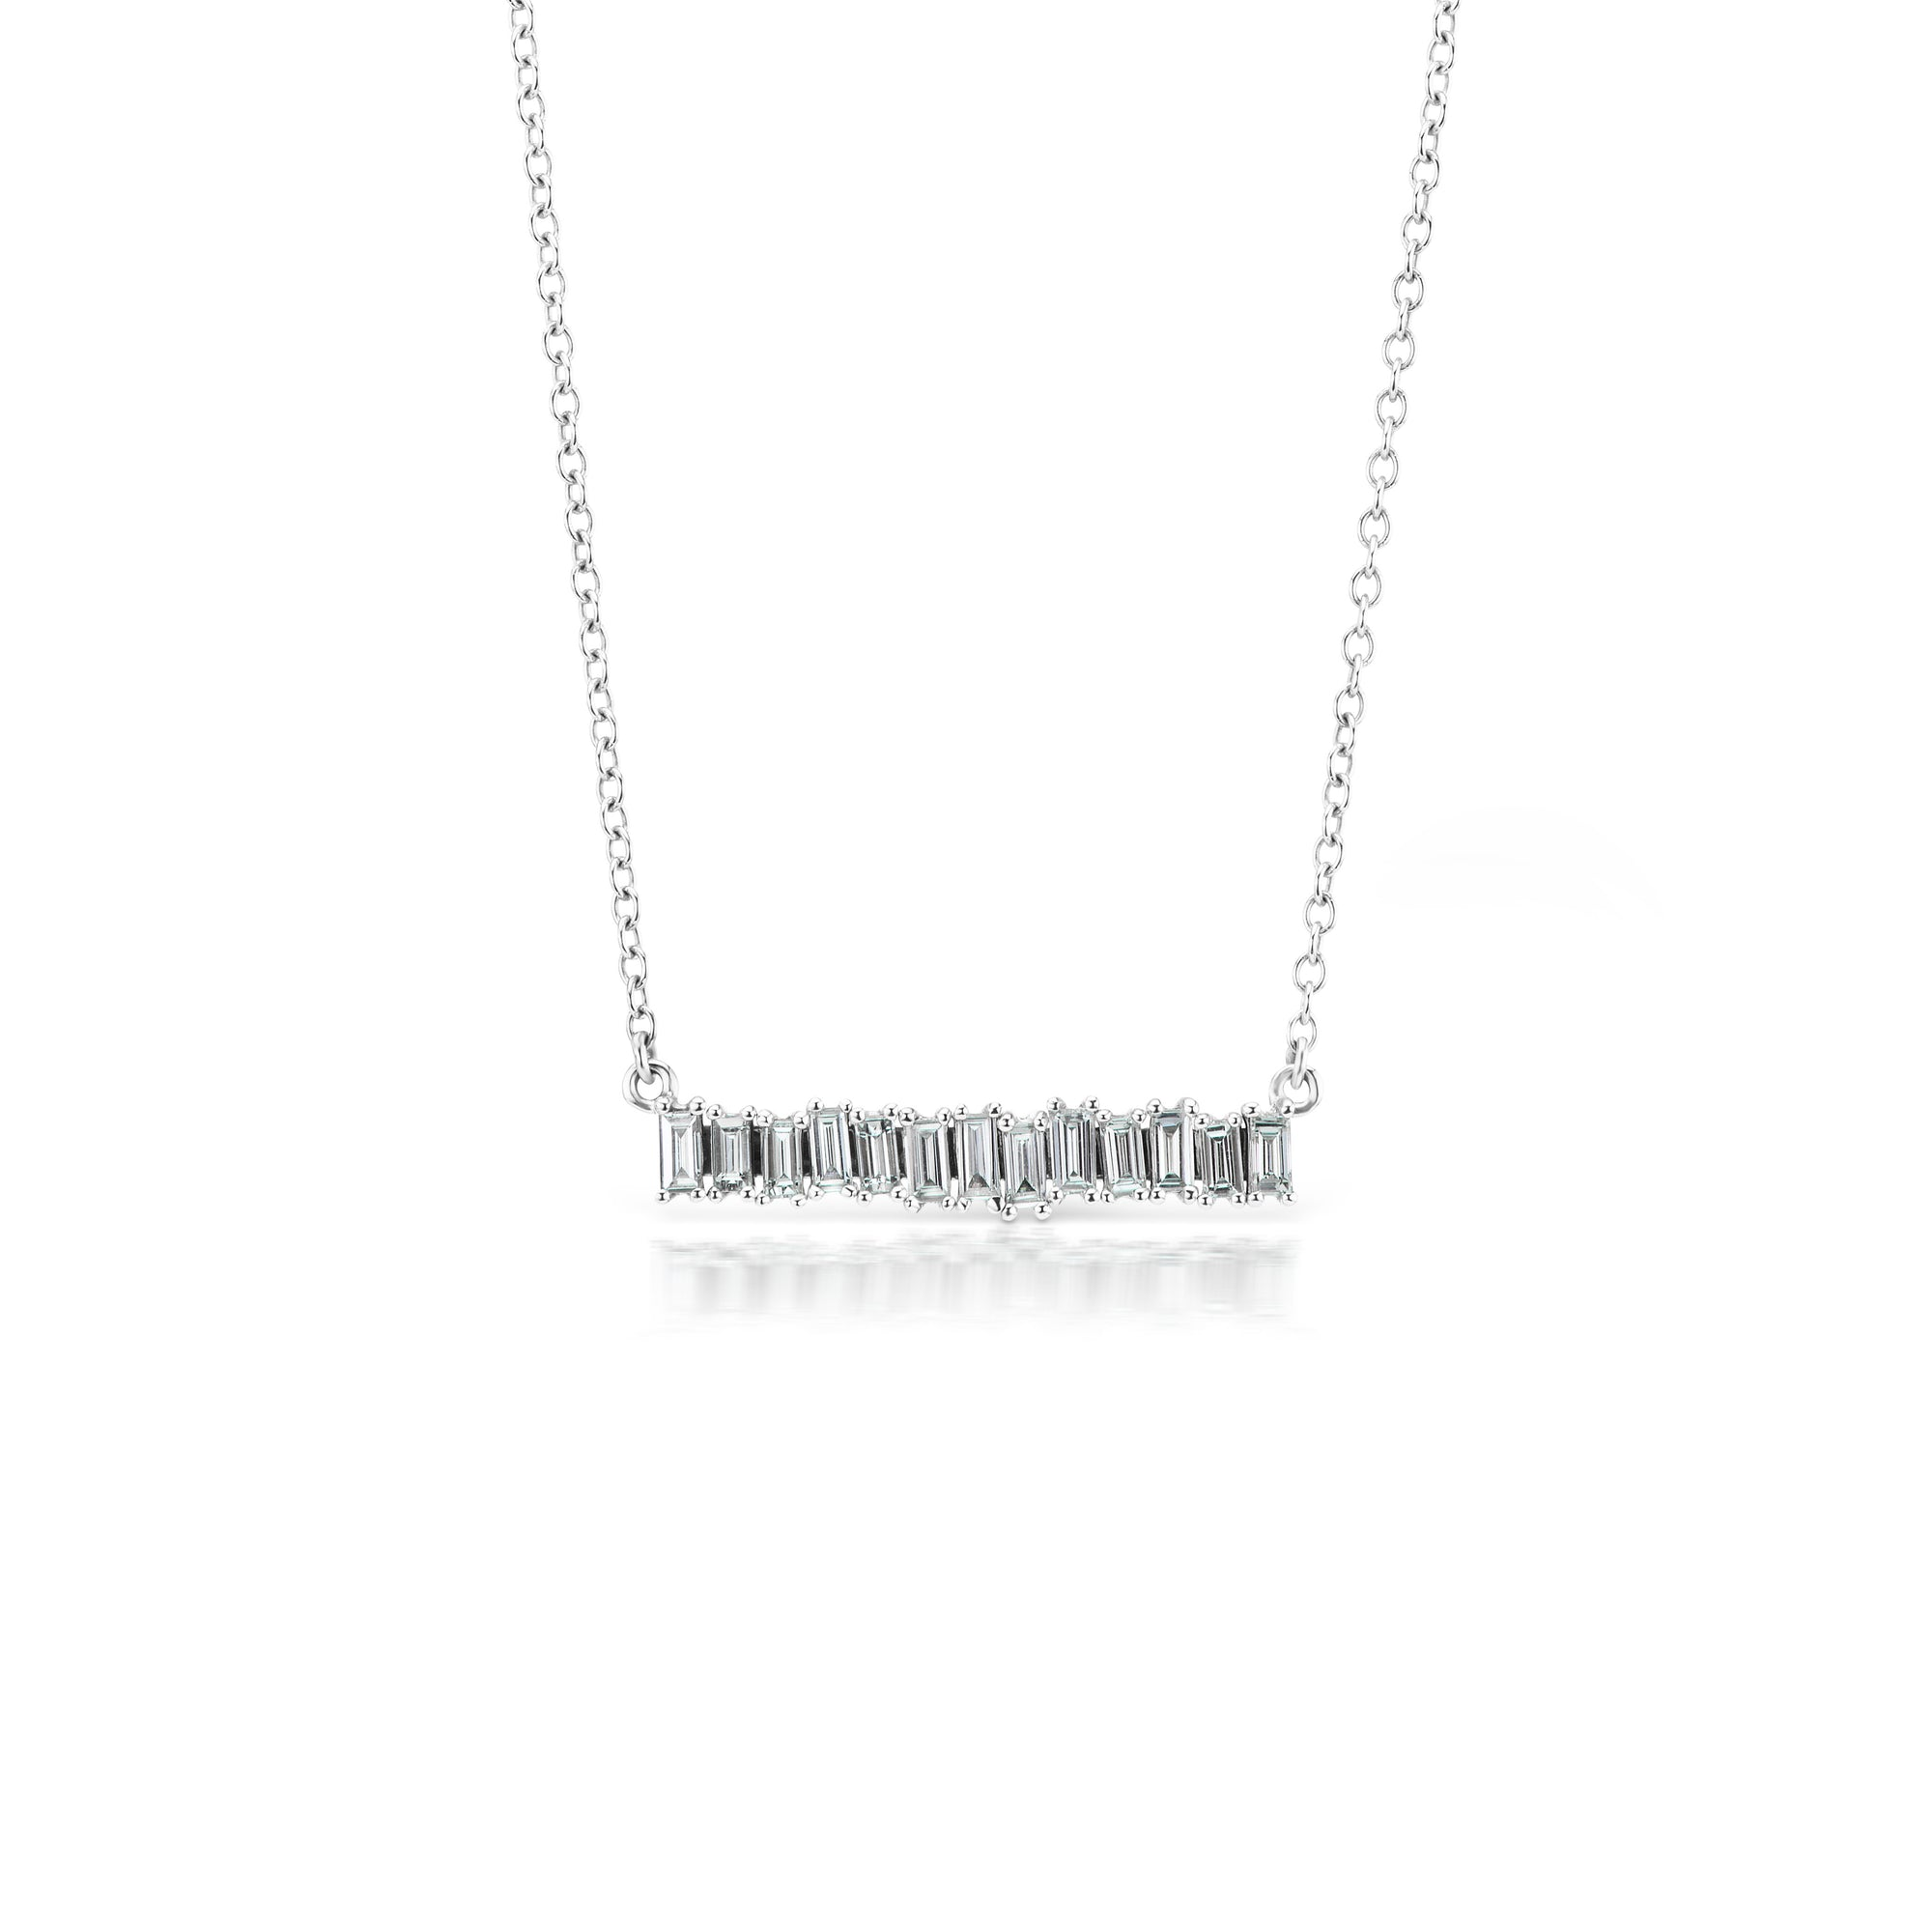 diamonds platinum diamond with bib set round baguette pin and flexible weighing the openwork necklace